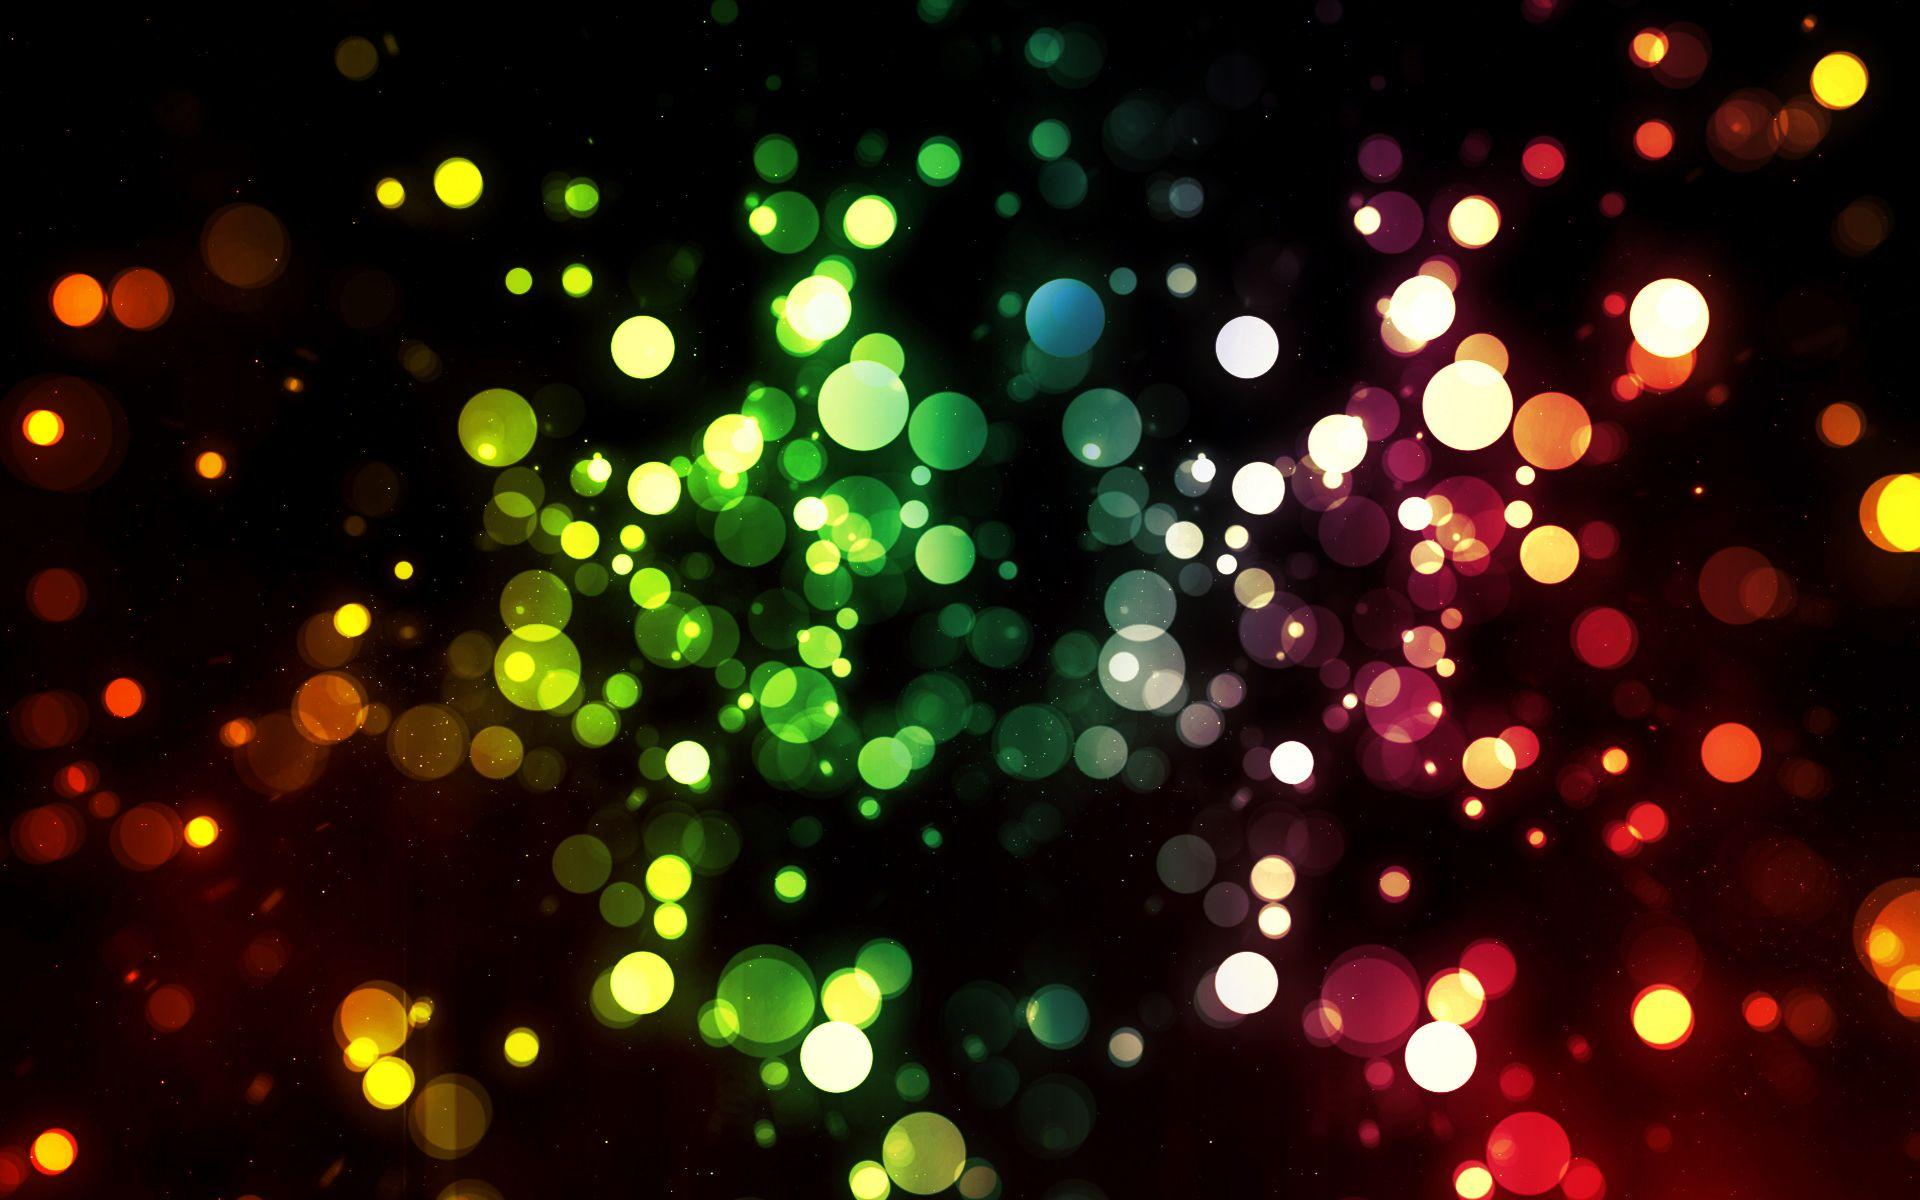 Colorful Particles Wallpaper | 1920x1200 | ID:15036